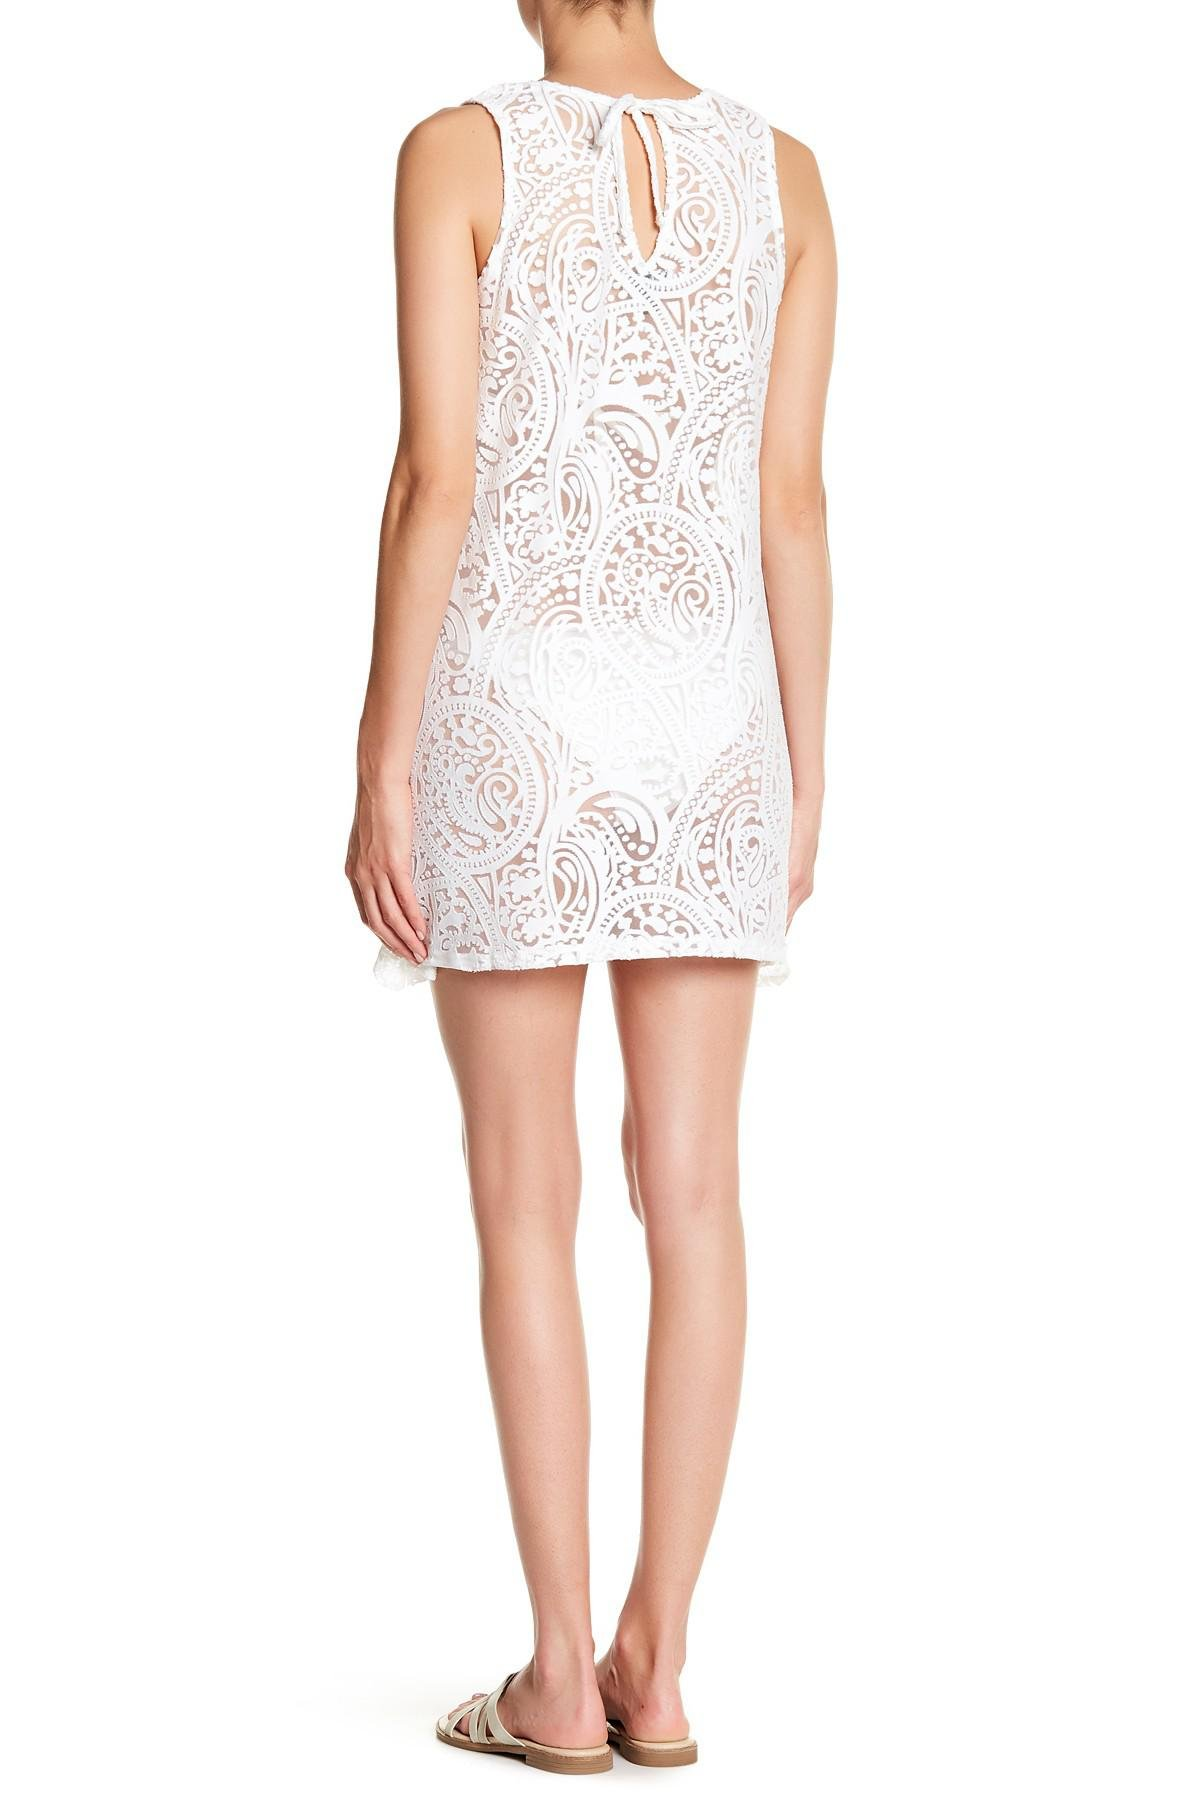 1c05aa1949 Lyst - J Valdi Lace Cover-up in White